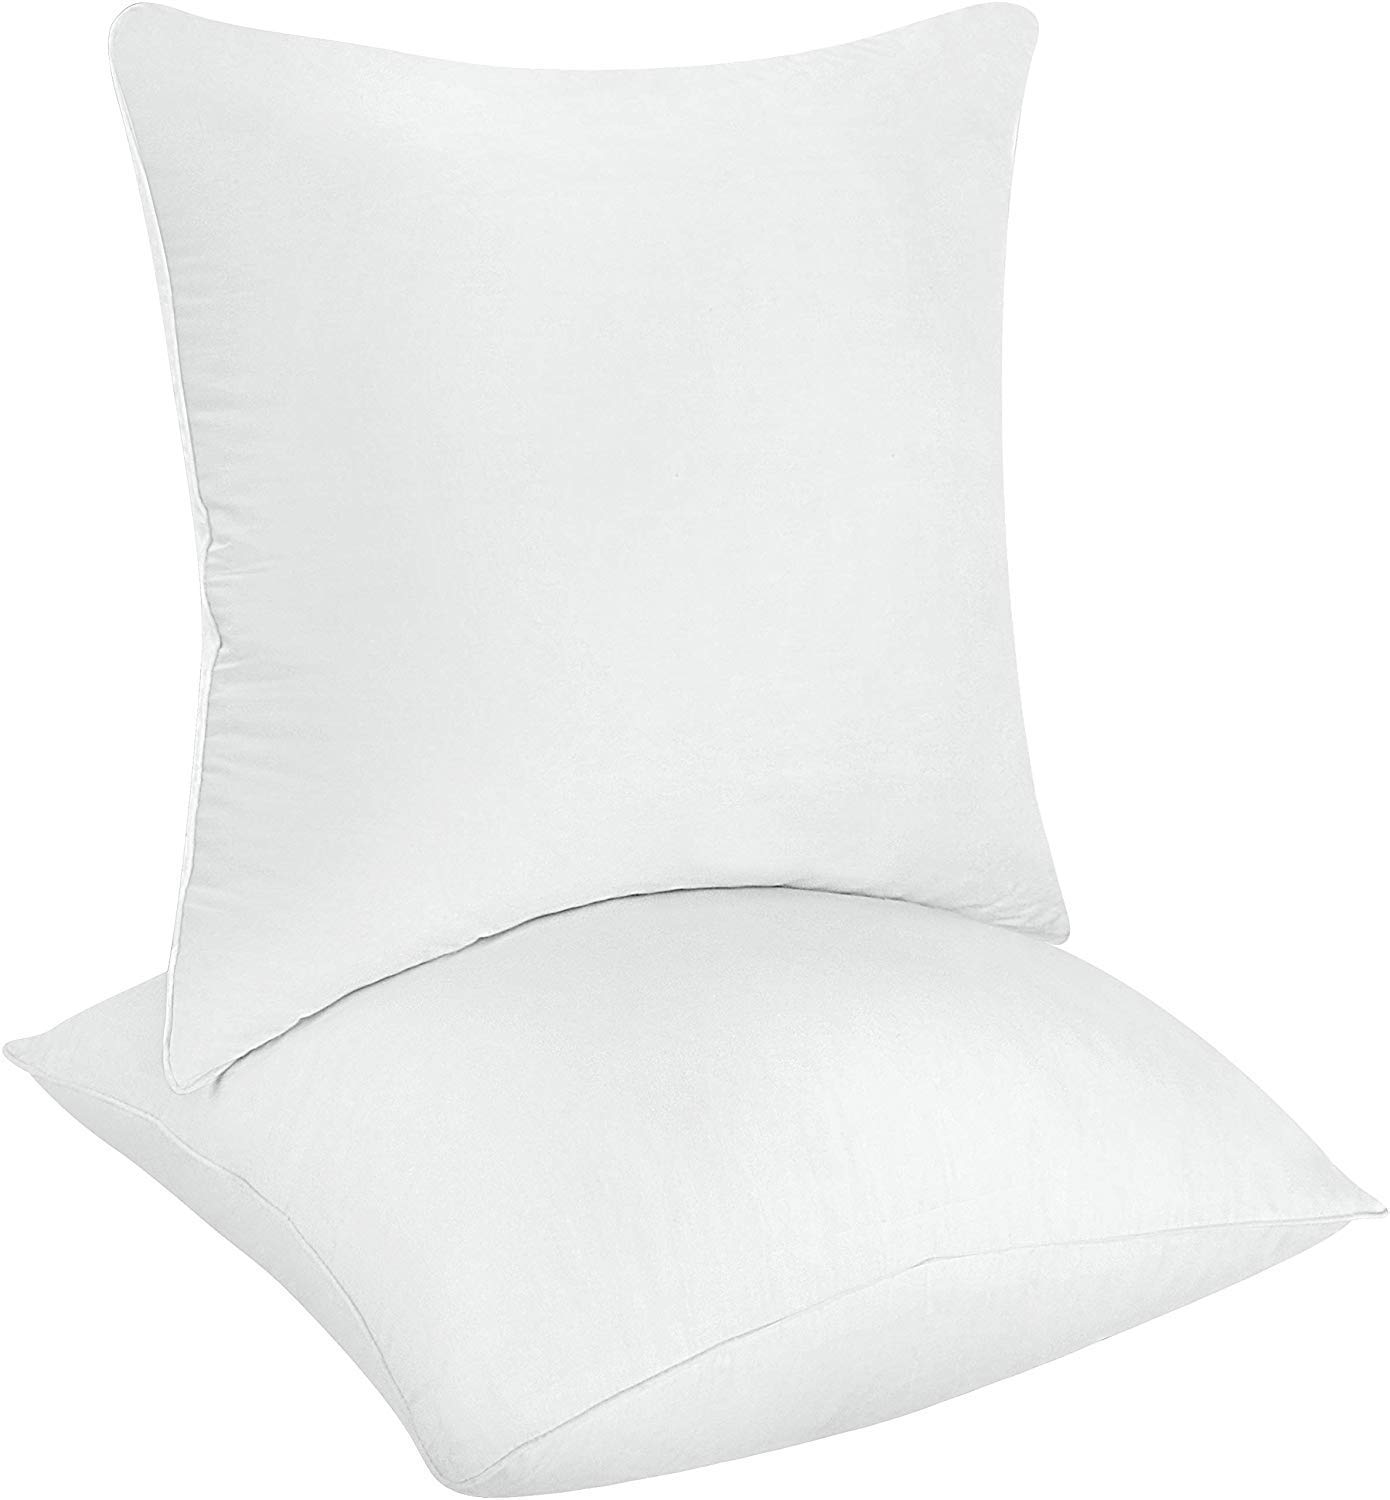 Utopia Bedding Throw Pillows Insert (Pack of 2, White) – 12 x 12 Inches Bed and Couch Pillows – Indoor Decorative…